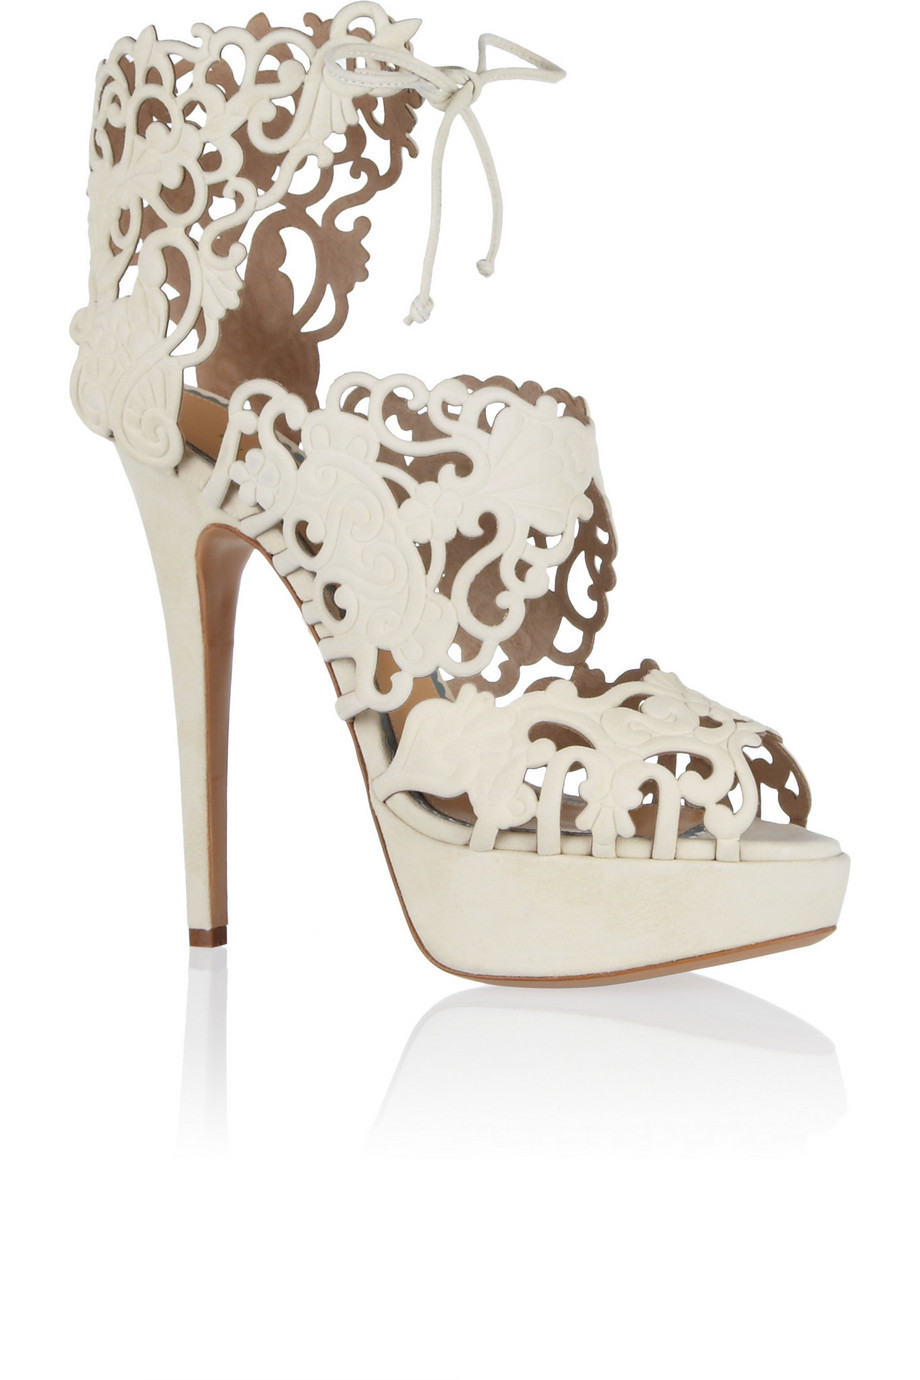 Charlotte Olympia Belinda Cutout Suede Sandals, Ivory, Women's US Size: 11.5, Size: 42